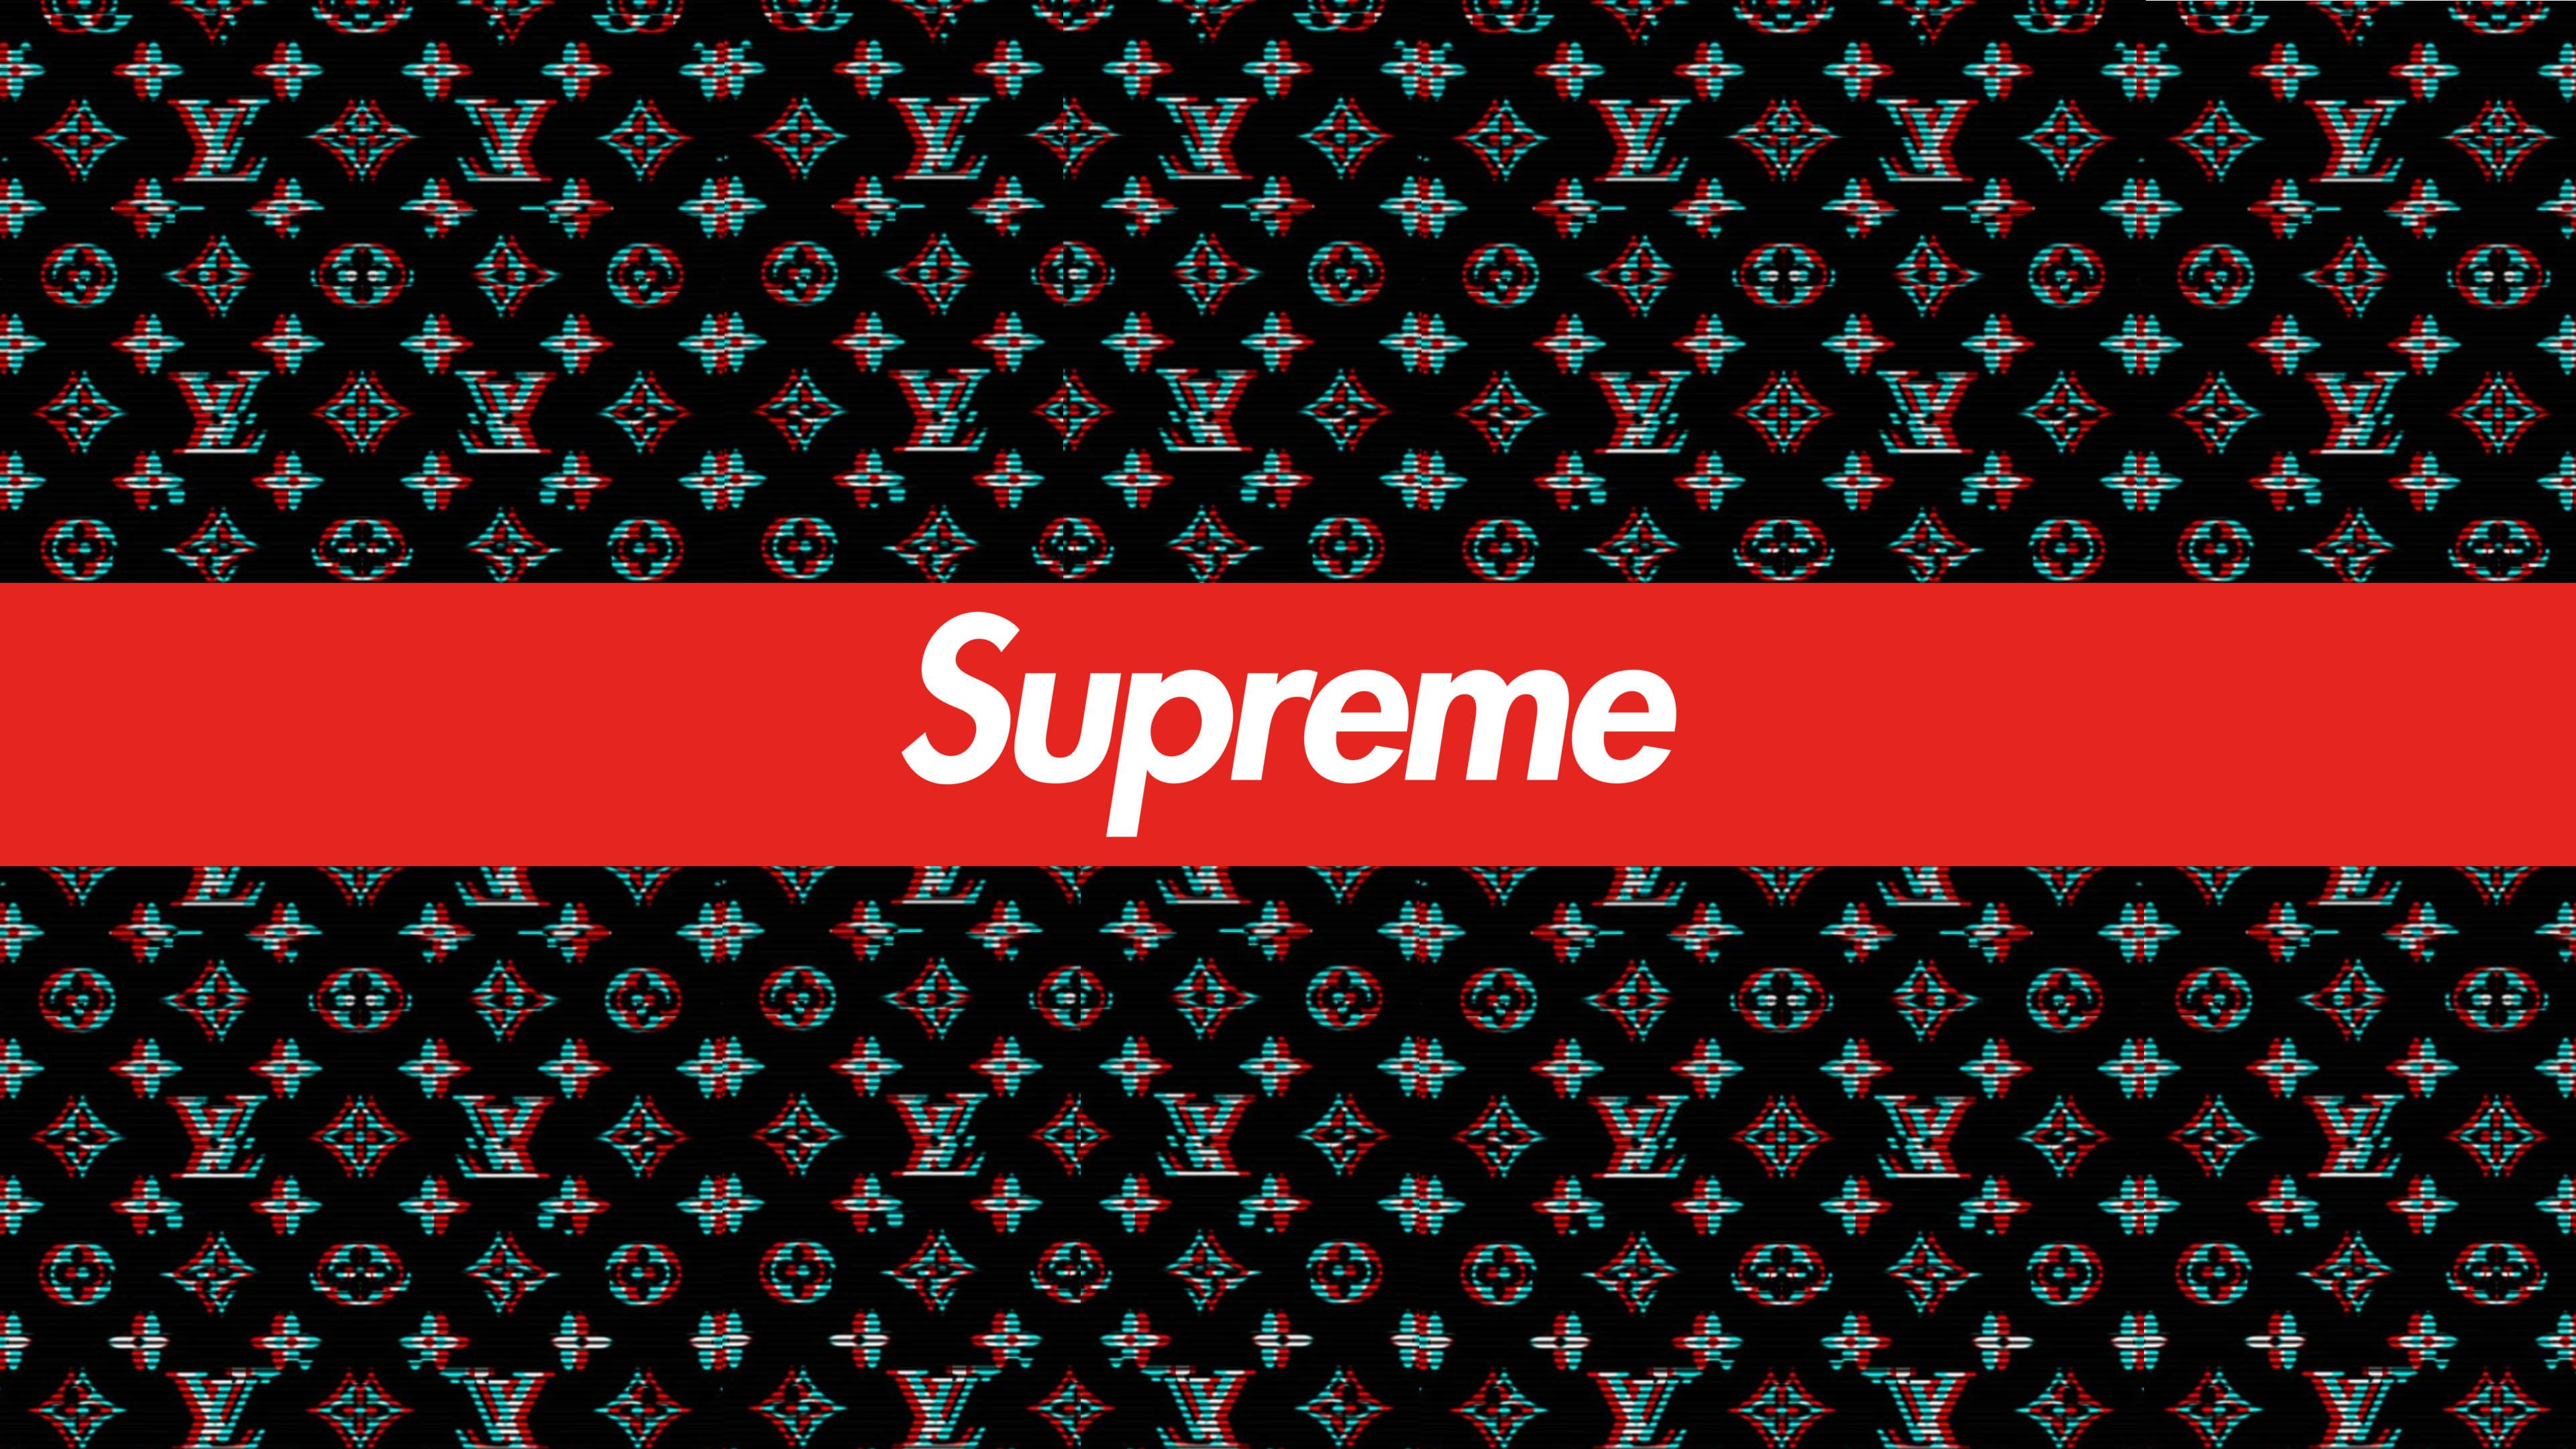 Res 3840x2160 By Gxgang Instagram Com Gxgangig Supreme Wallpapers Supreme Wallpaper Supreme Wallpaper Hd Louis Vuitton Supreme